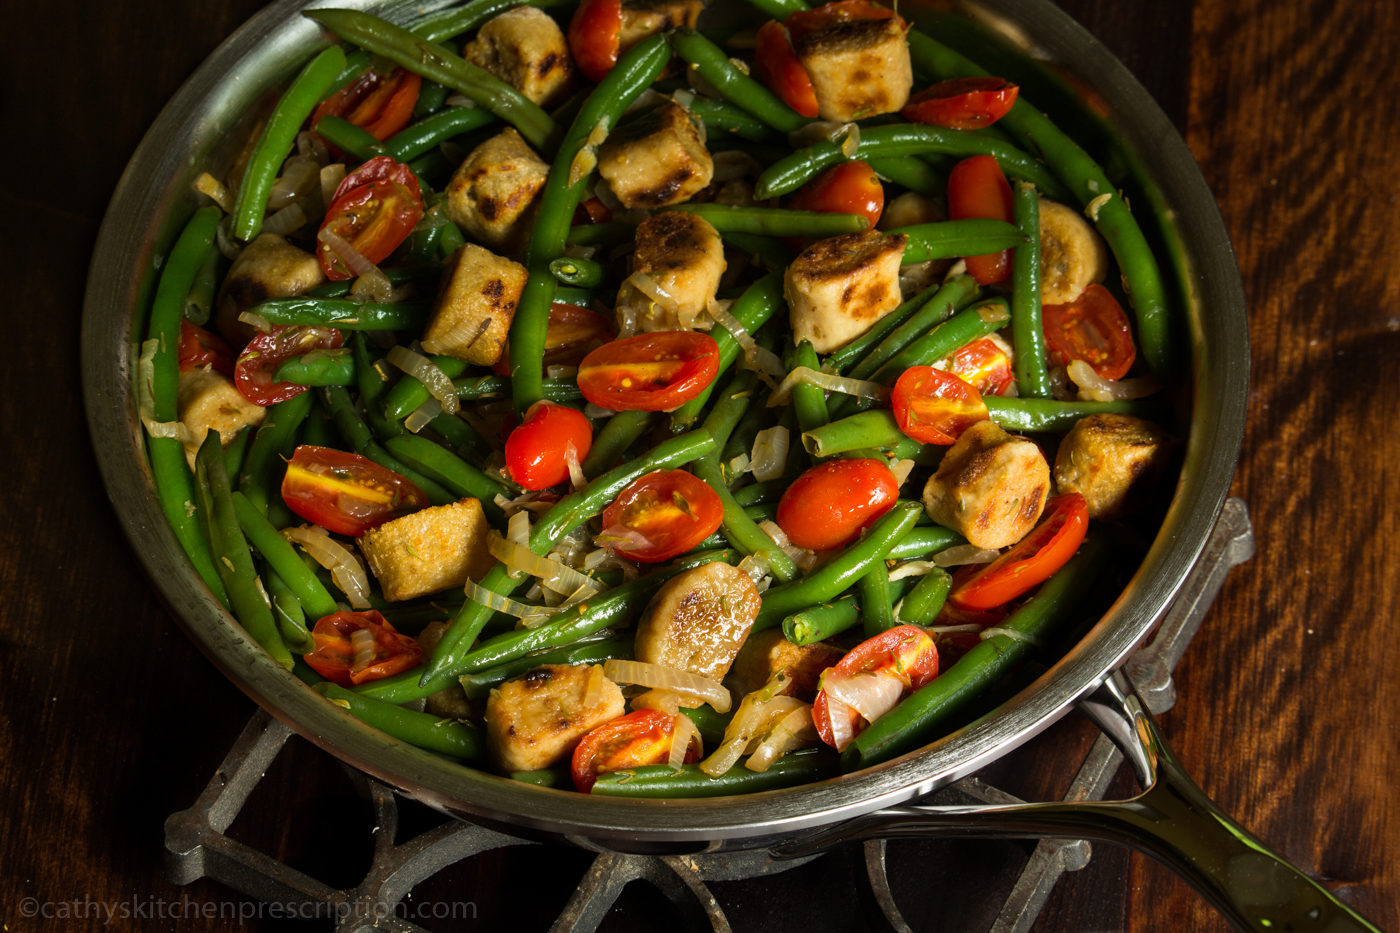 Pan-Fried Dumplings with Haricots Verts and Grape Tomatoes